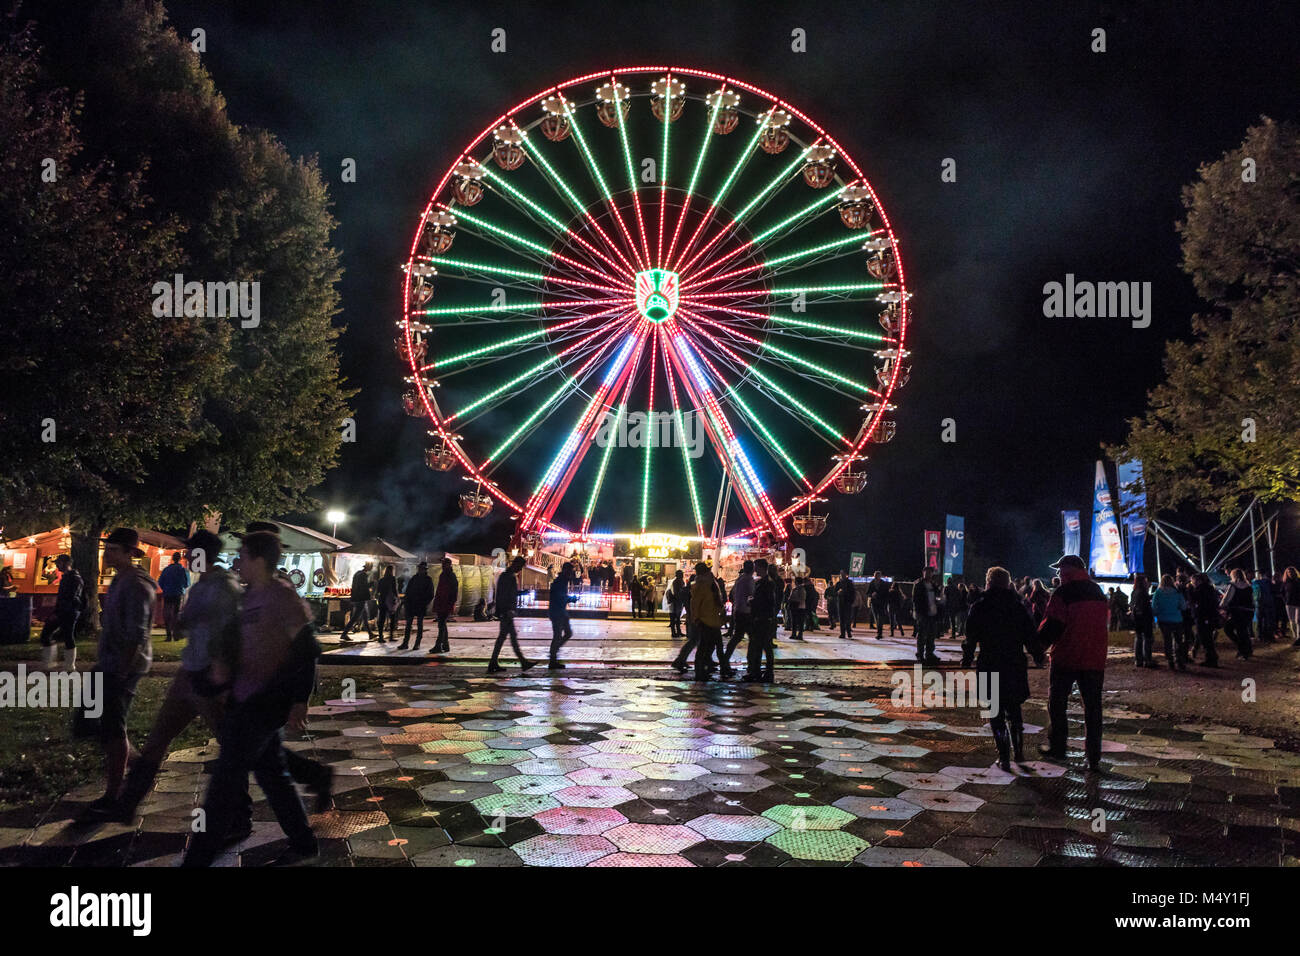 Impressions 27. Open air in Zofingen - Stock Image